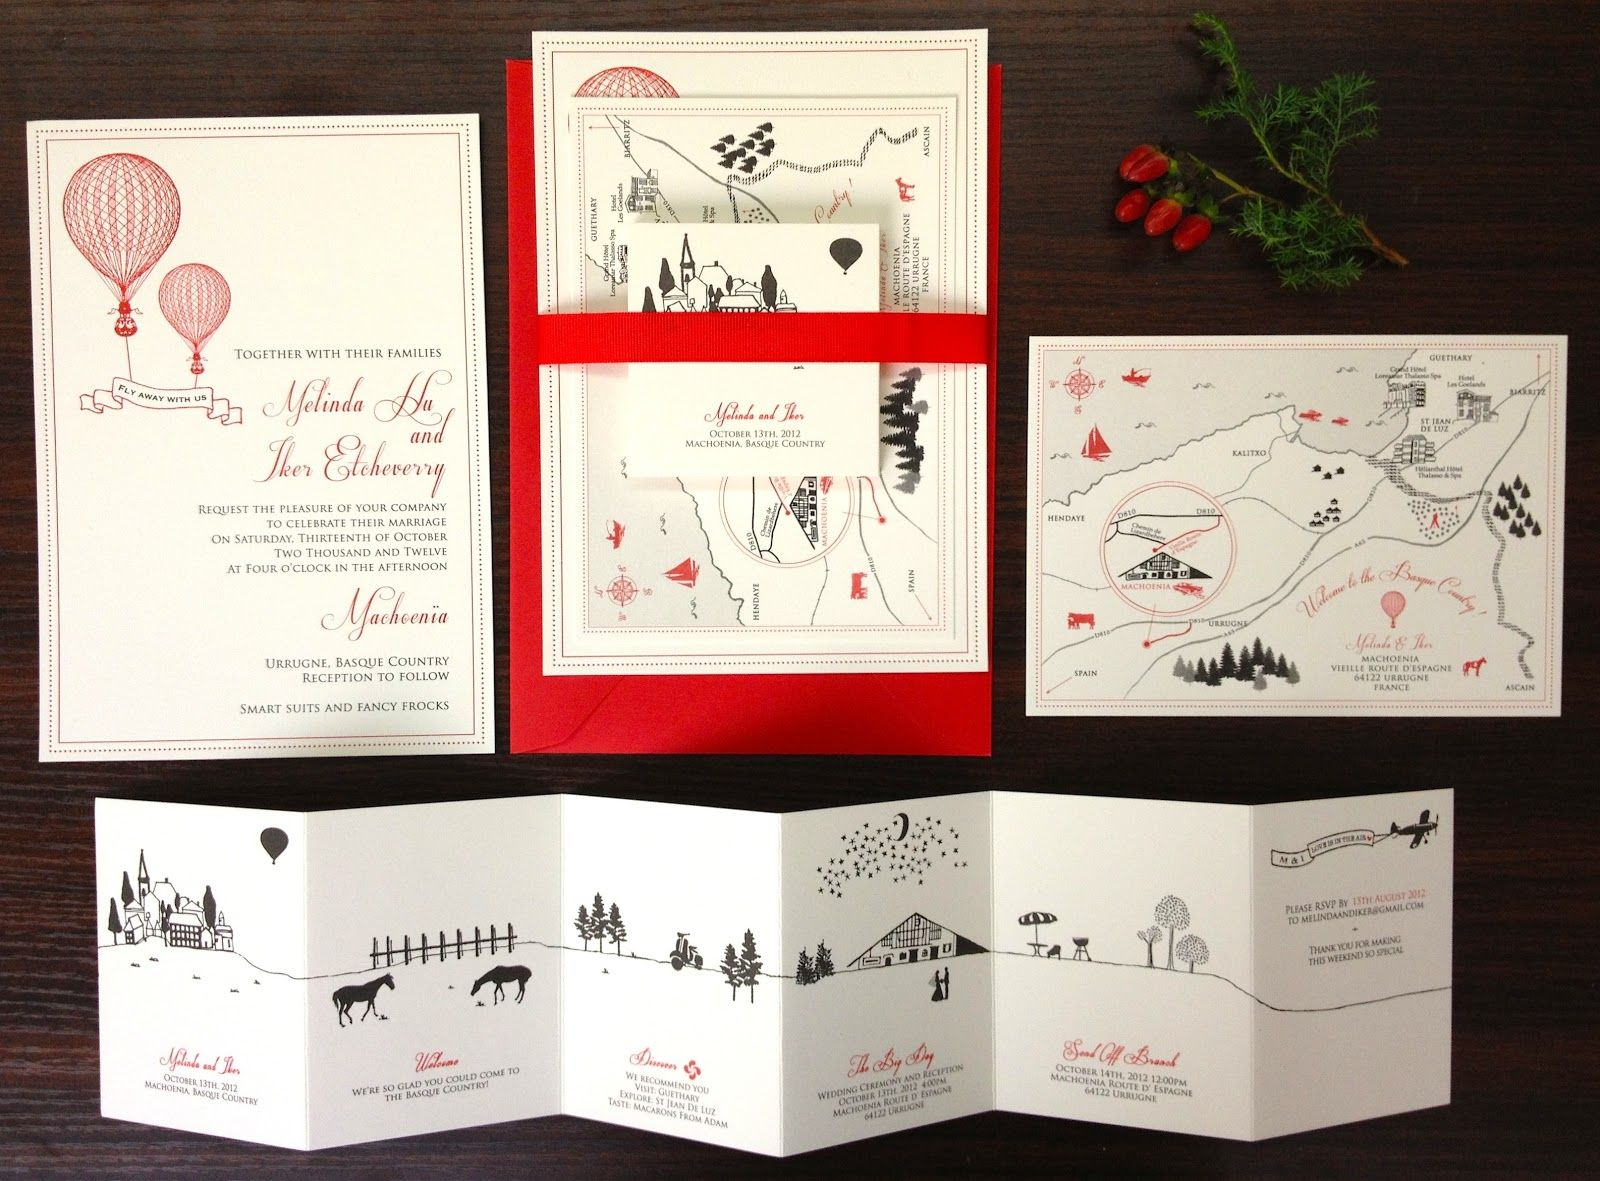 HK+Wedding+invitation+ | E&J - julijs | Pinterest | Weddings ...